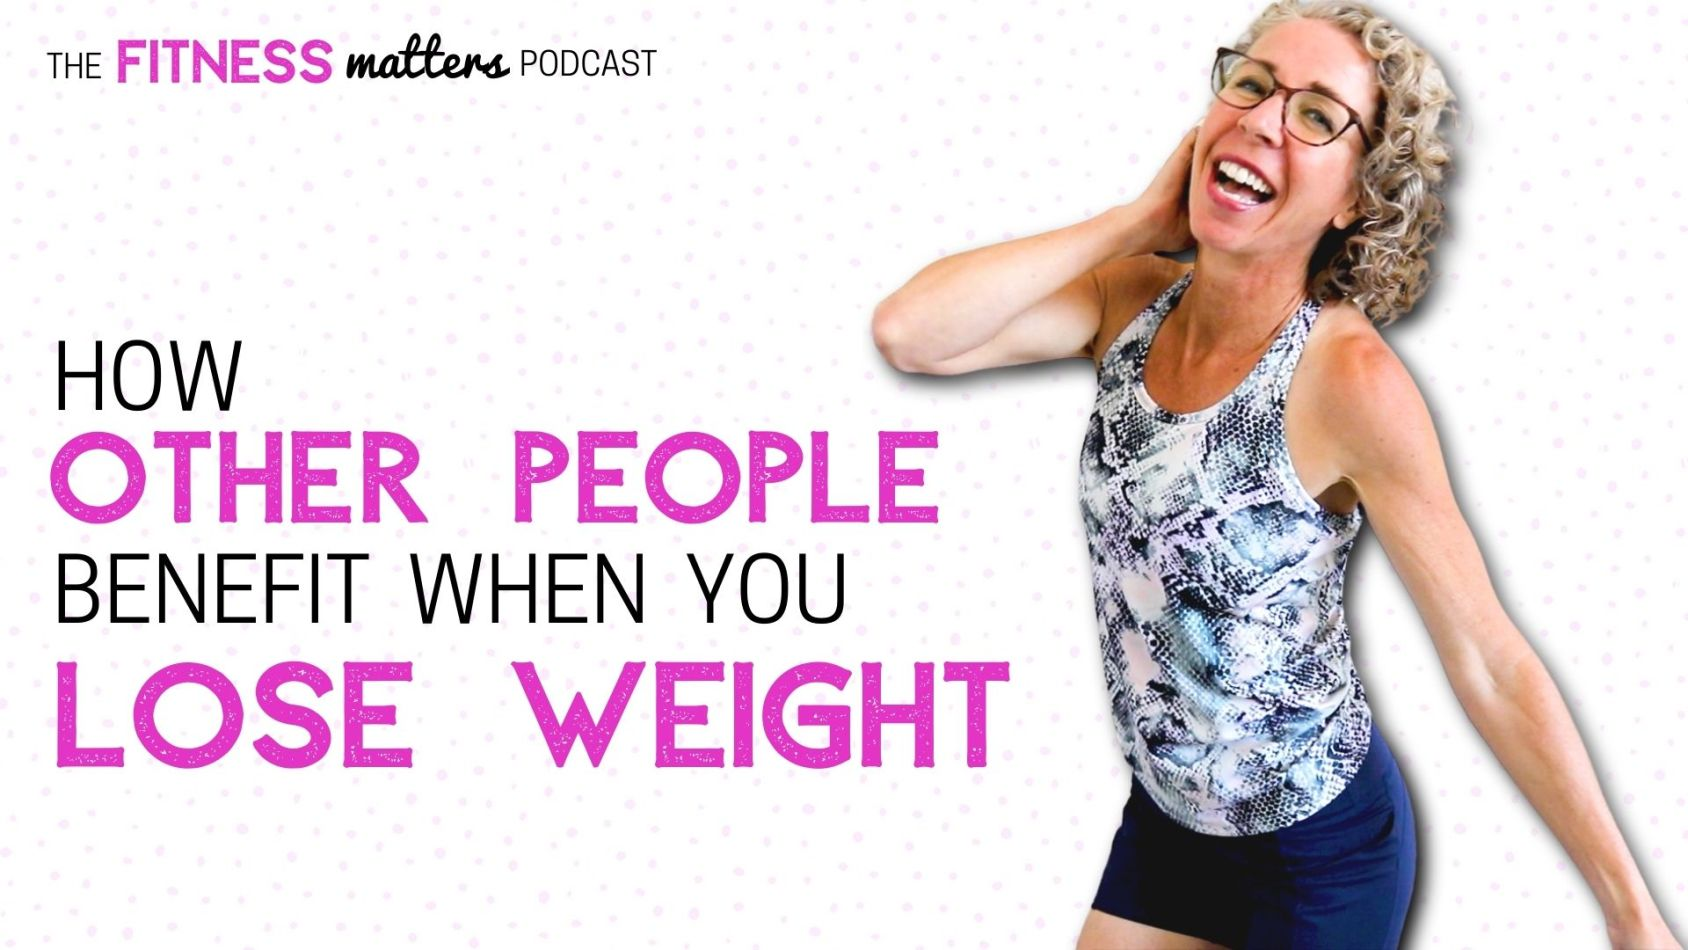 Ep. 099: How OTHER PEOPLE Benefit When You LOSE WEIGHT 🎧 The Fitness Matters Podcast with Pahla B